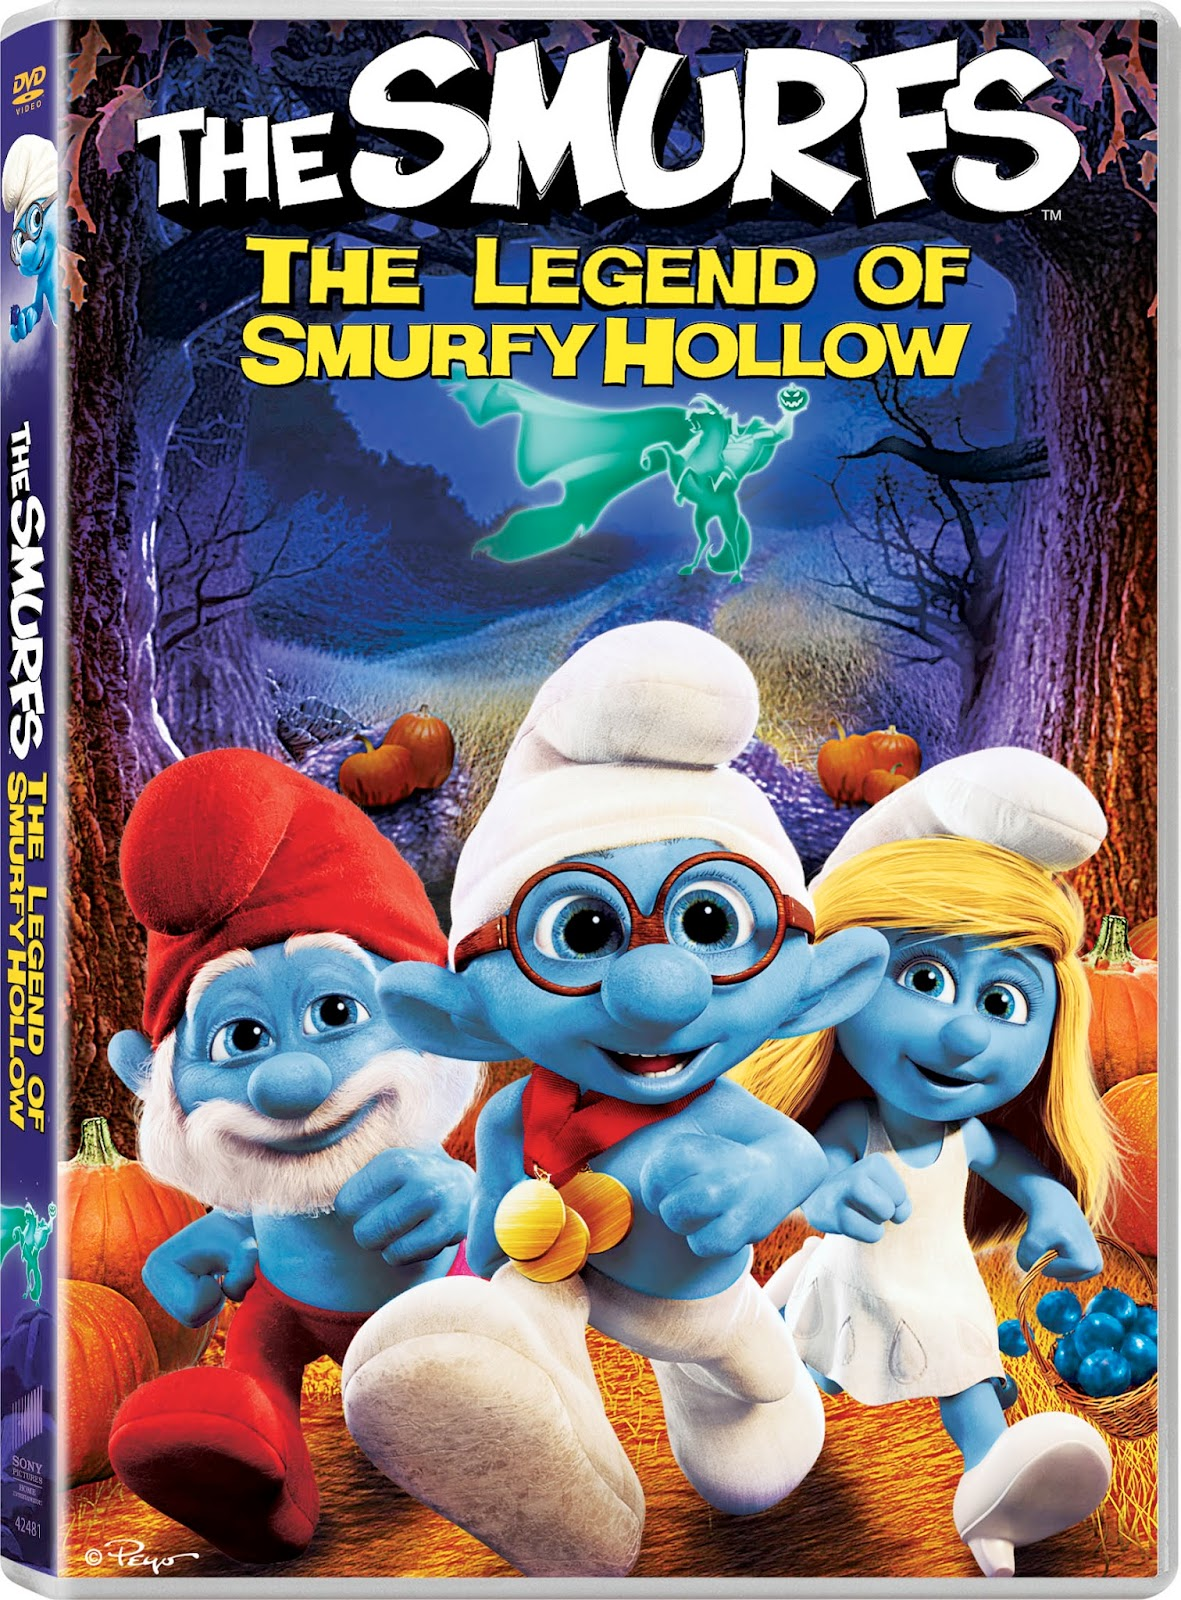 The Smurfs The Legend of Smurfy Hollow (2013) ταινιες online seires oipeirates greek subs